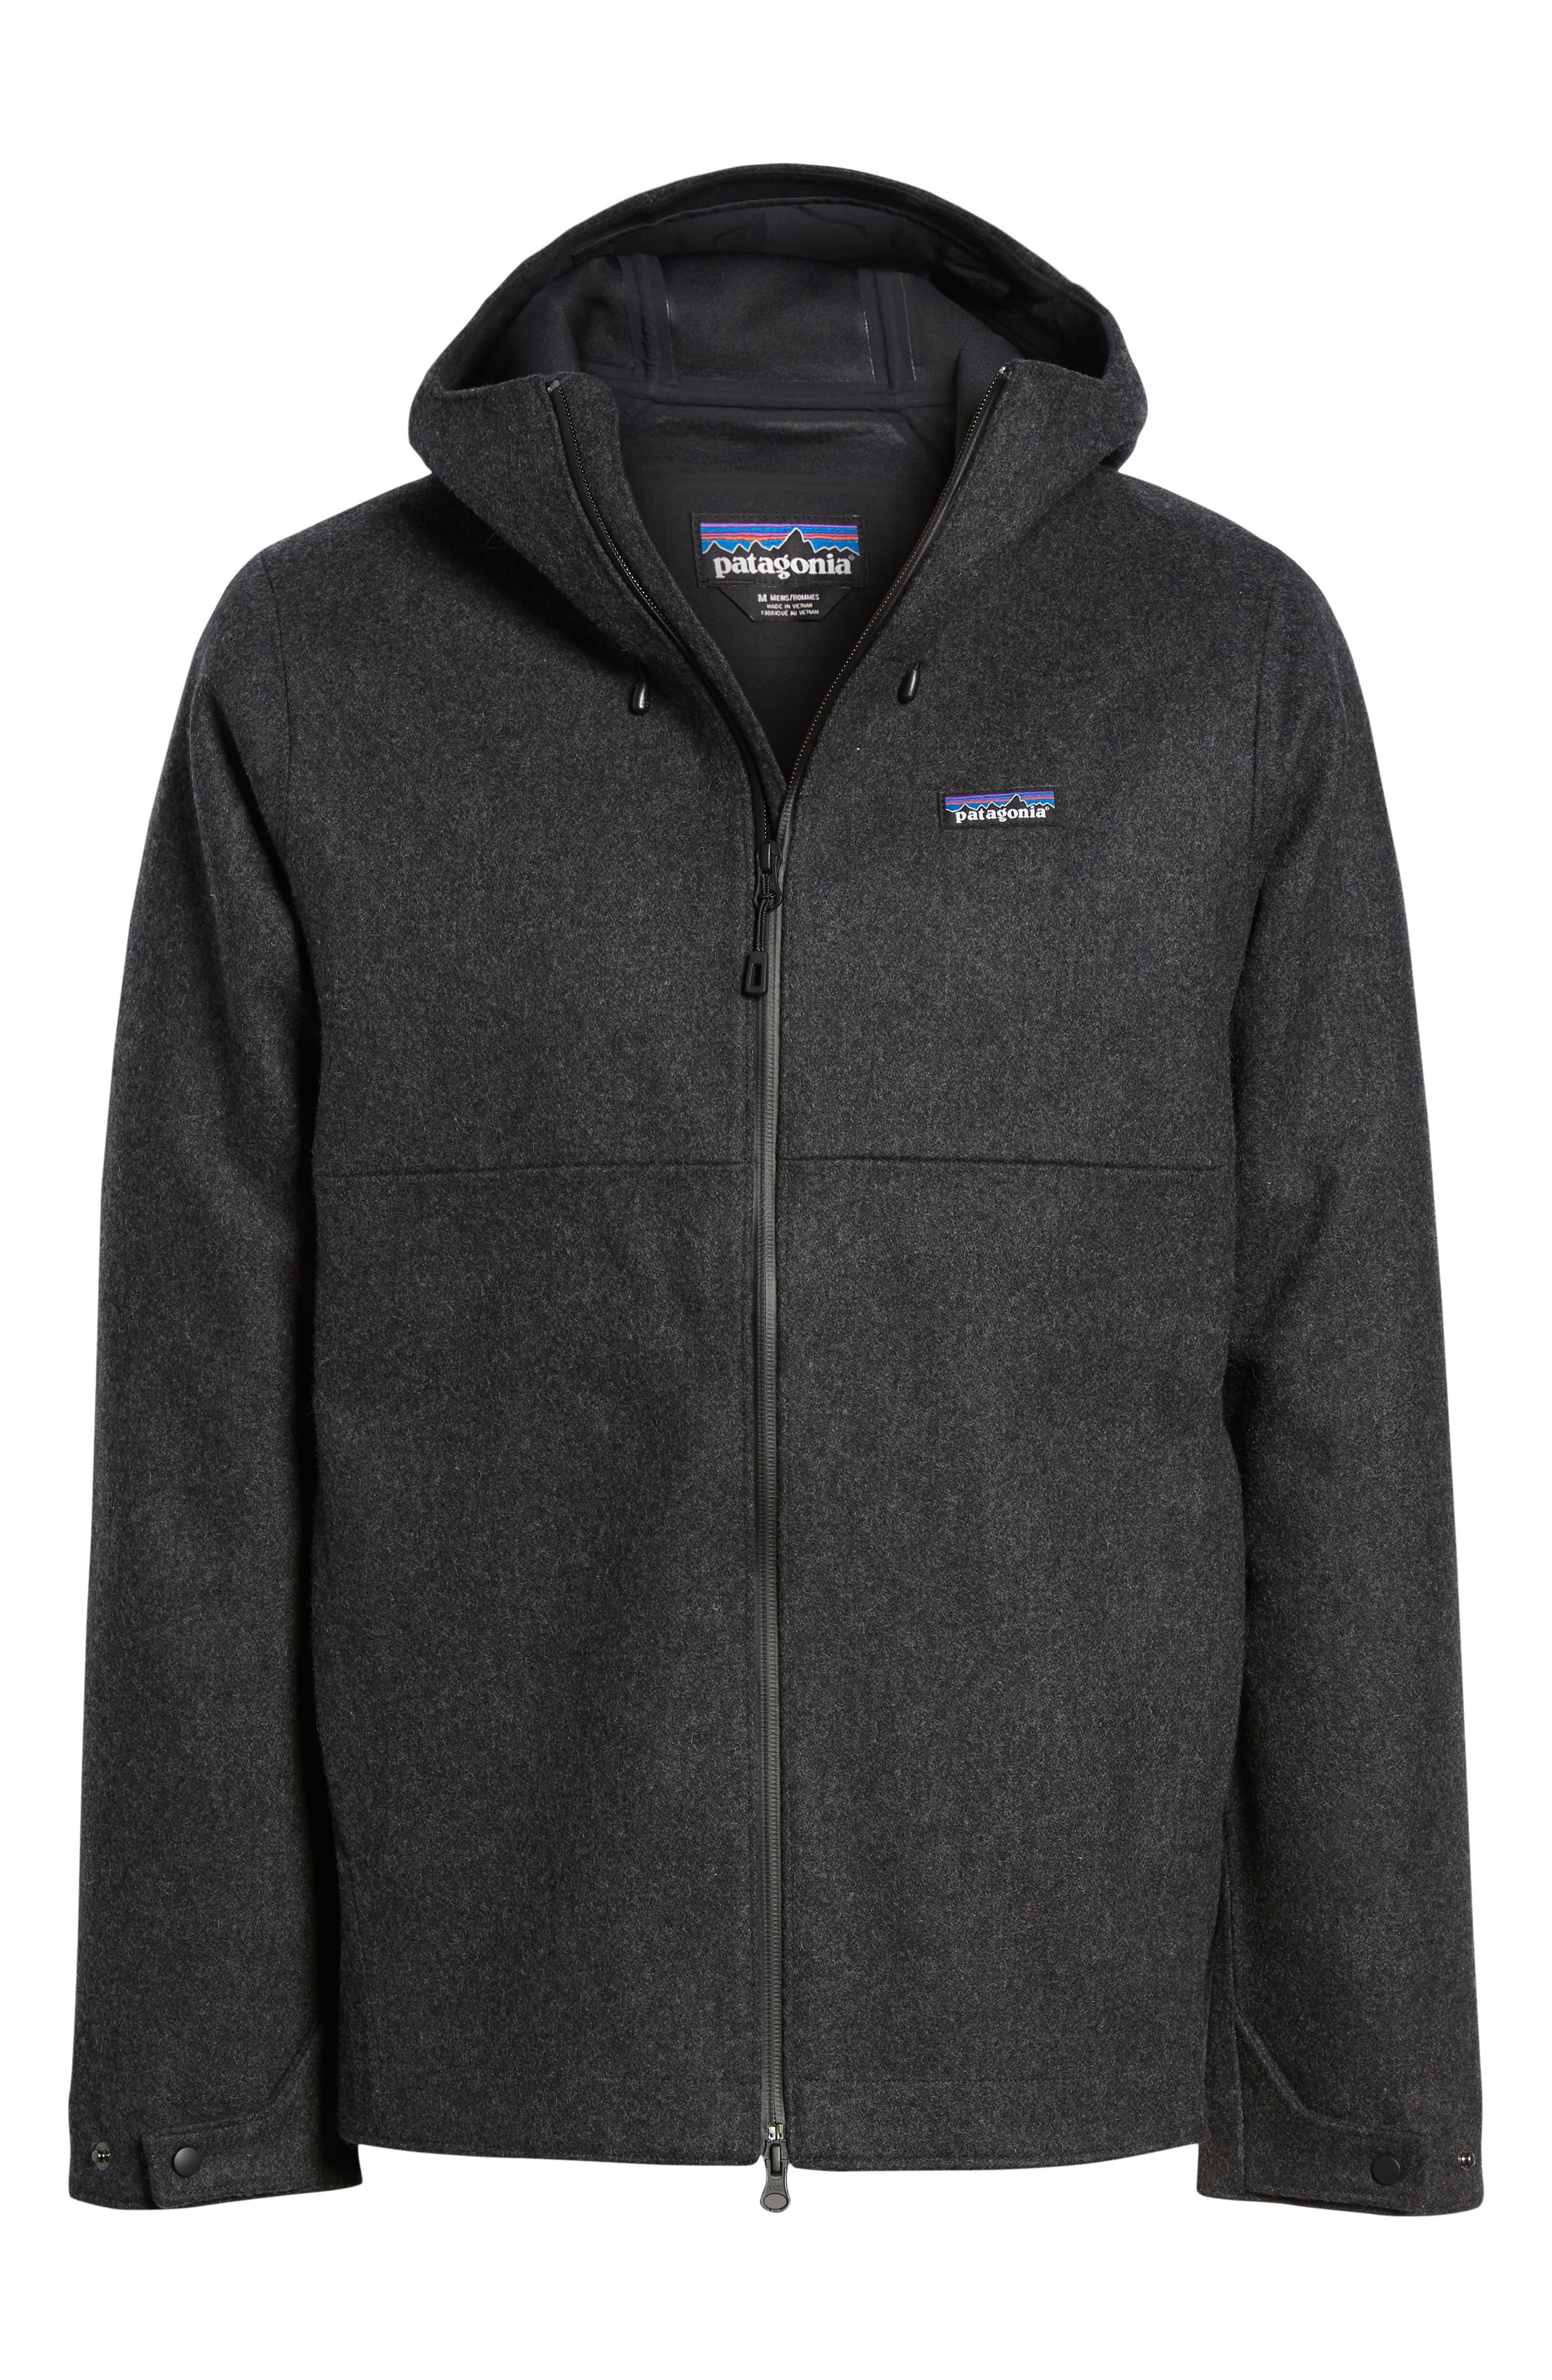 Woolyester Hooded Jacket,                             Alternate thumbnail 6, color,                             FORGE GREY